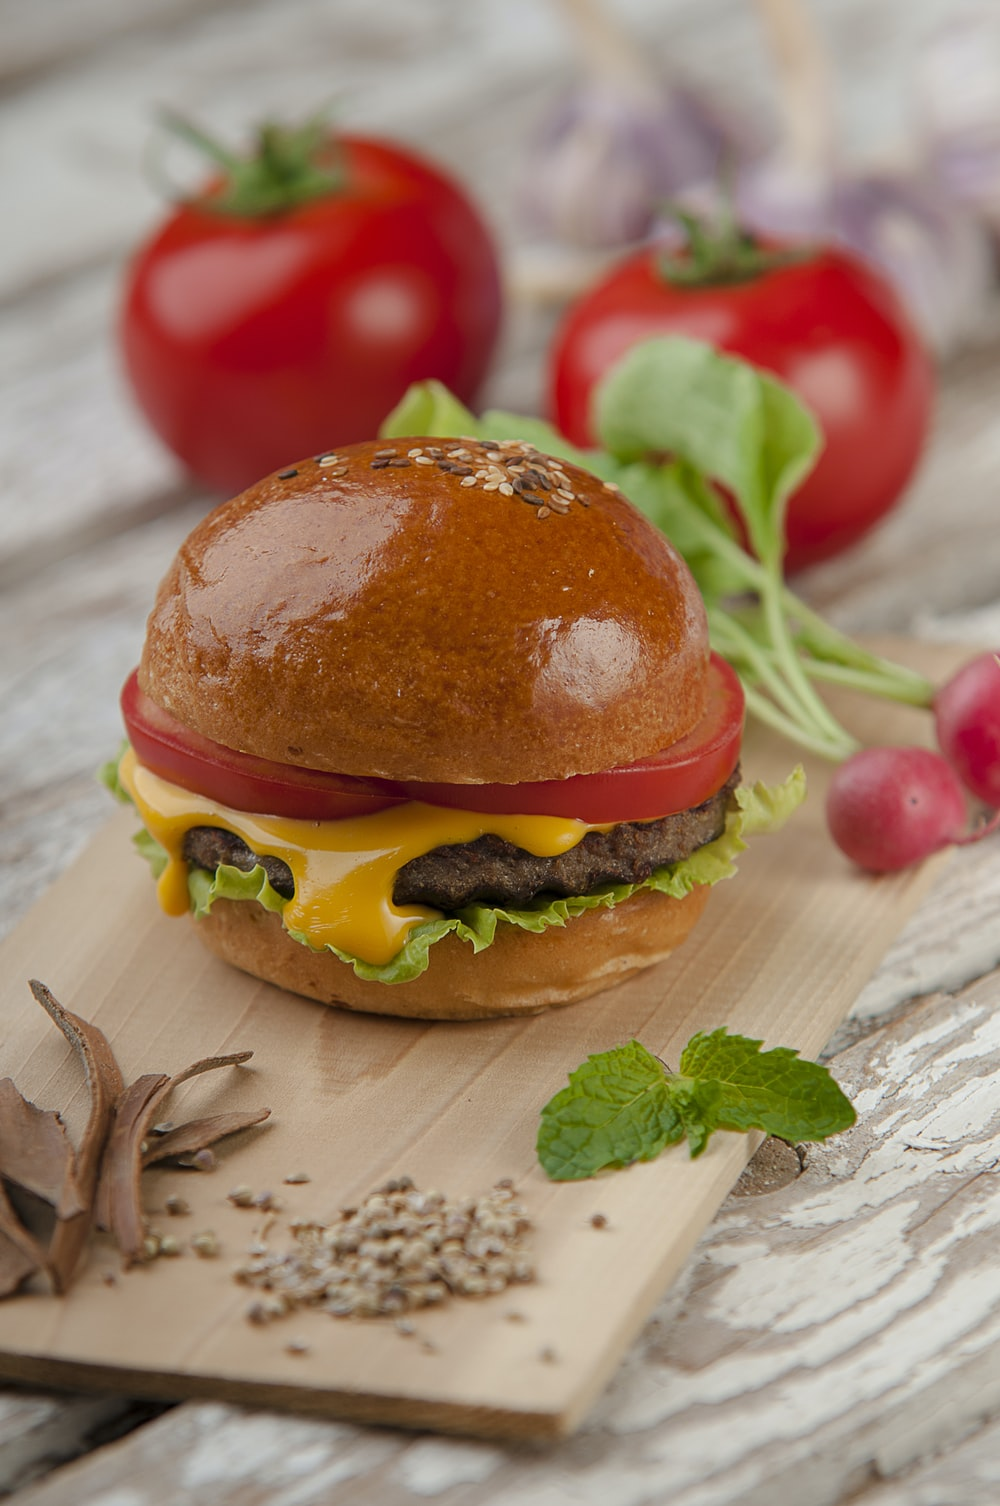 photo of burger with tomato and cheese